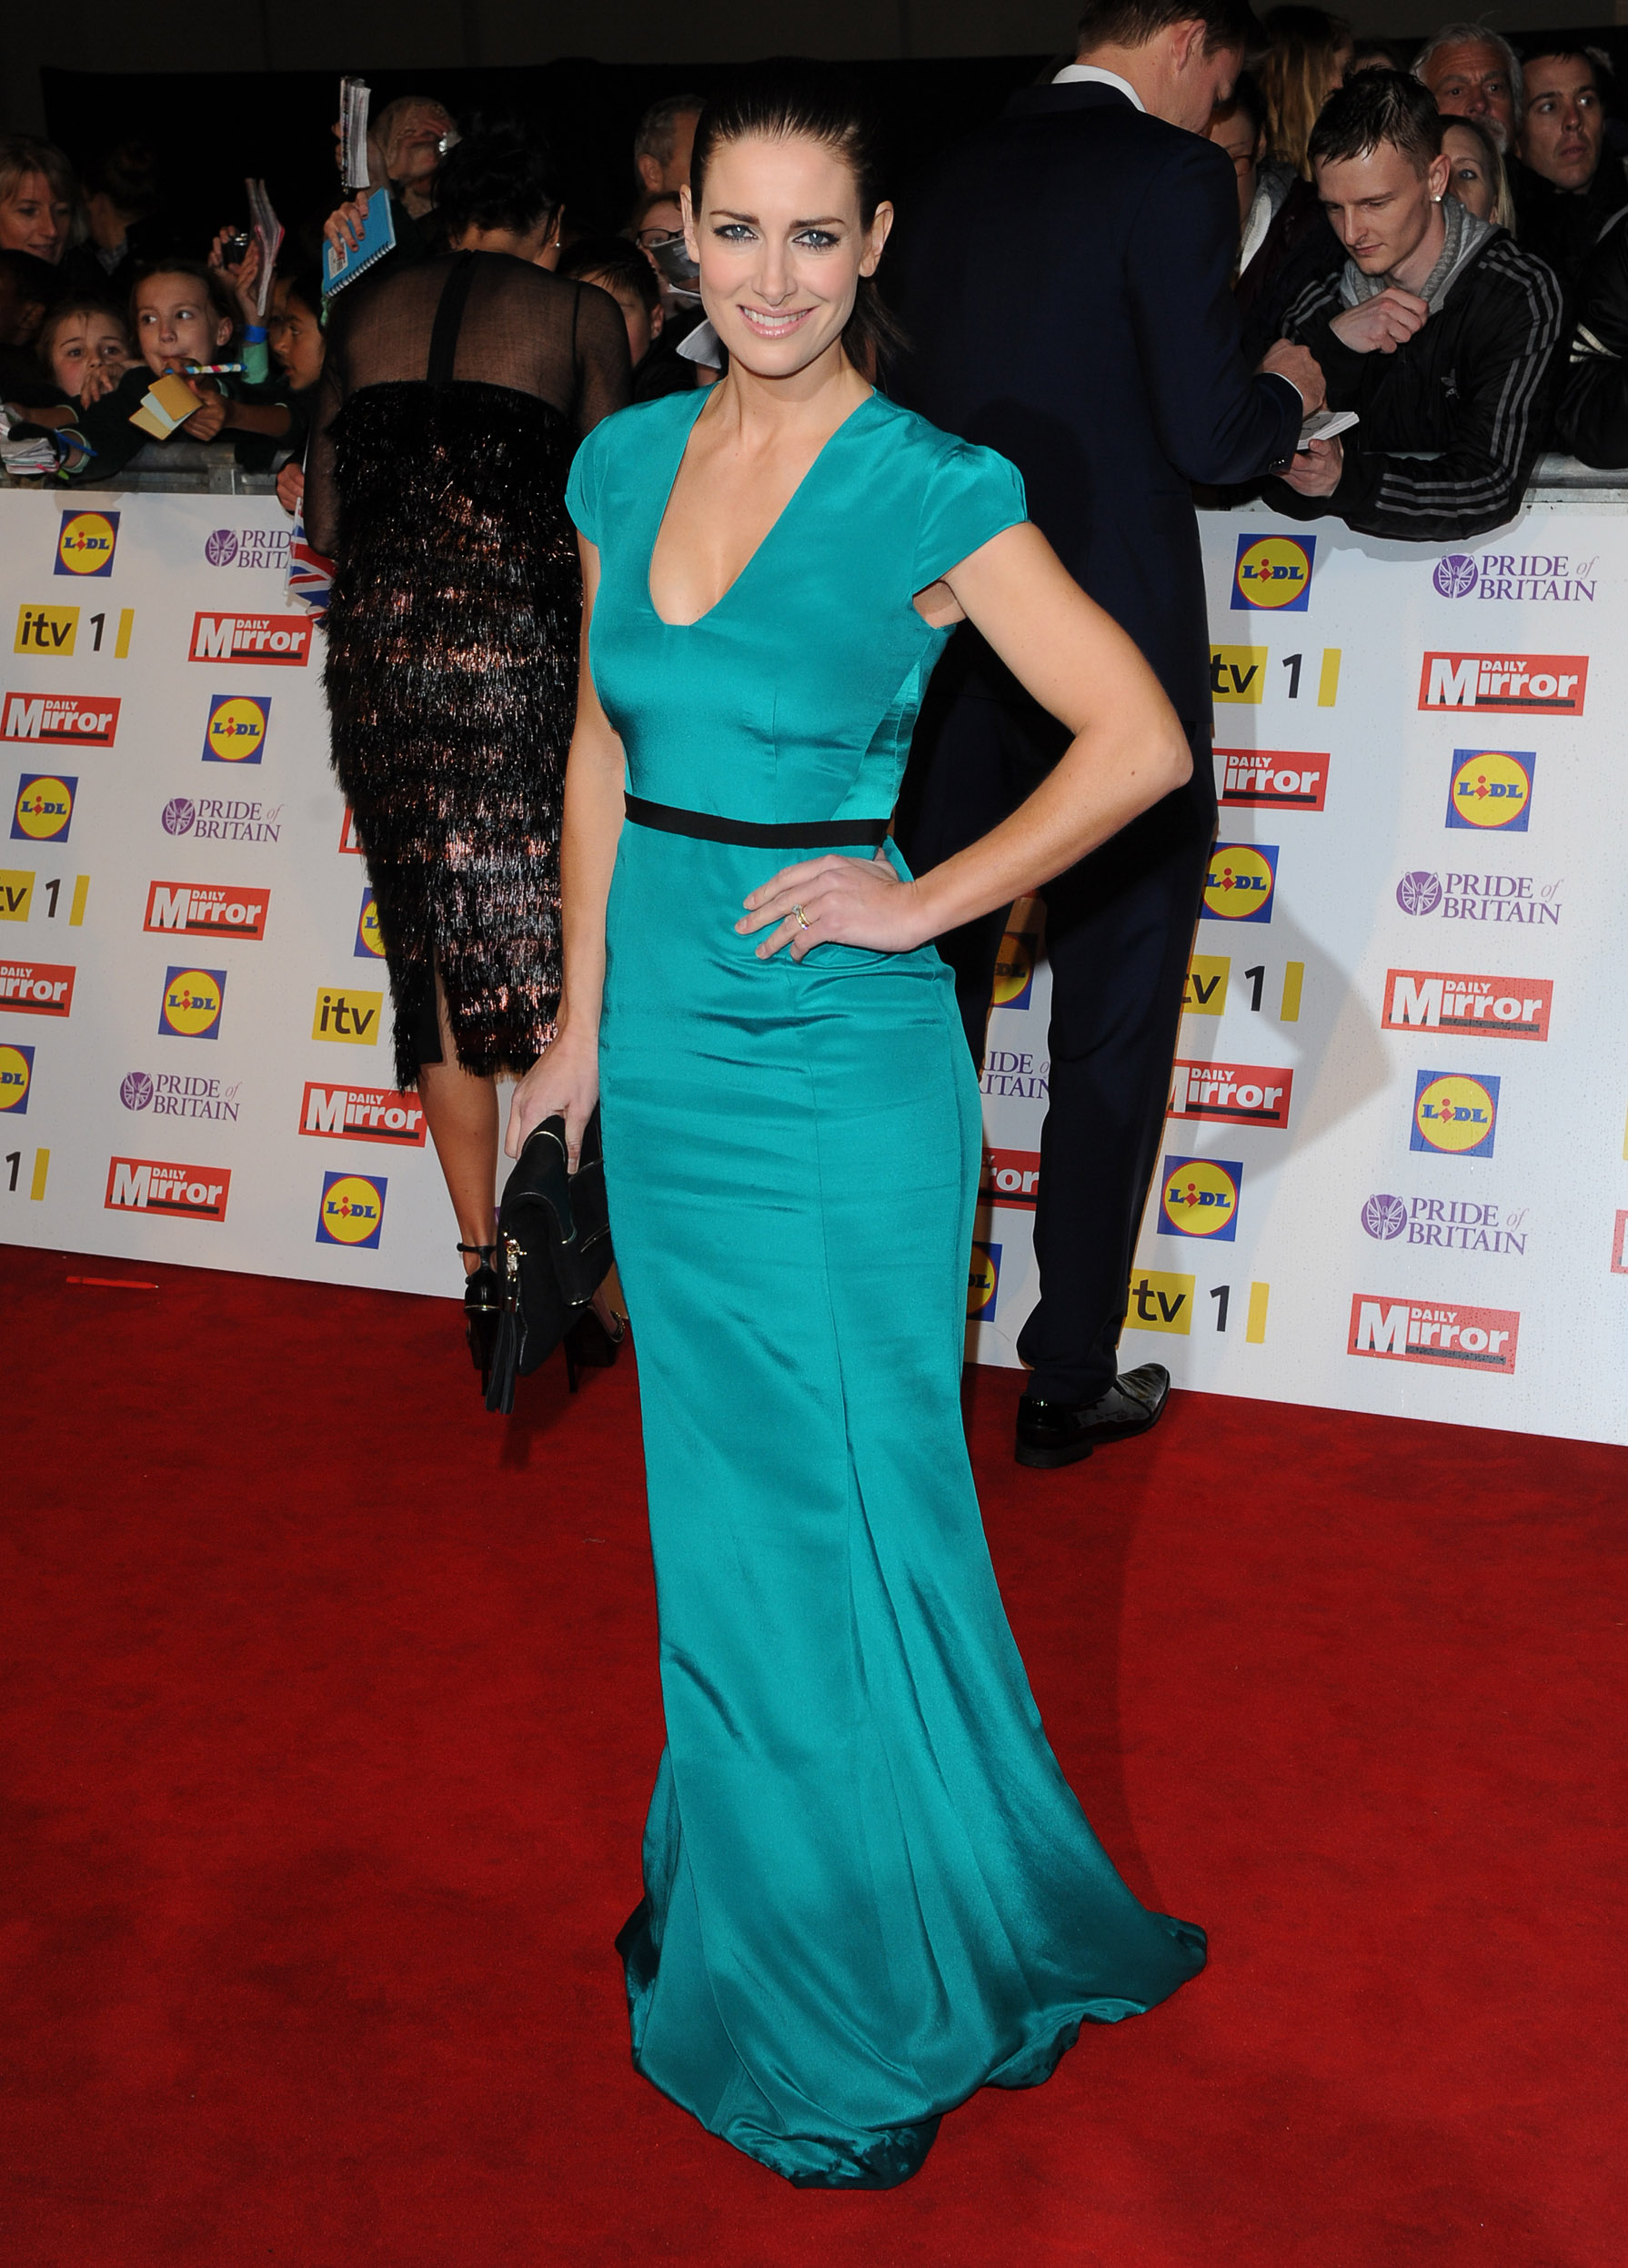 Kirsty Gallacher 2012 : Kirsty Gallacher cleavage-10